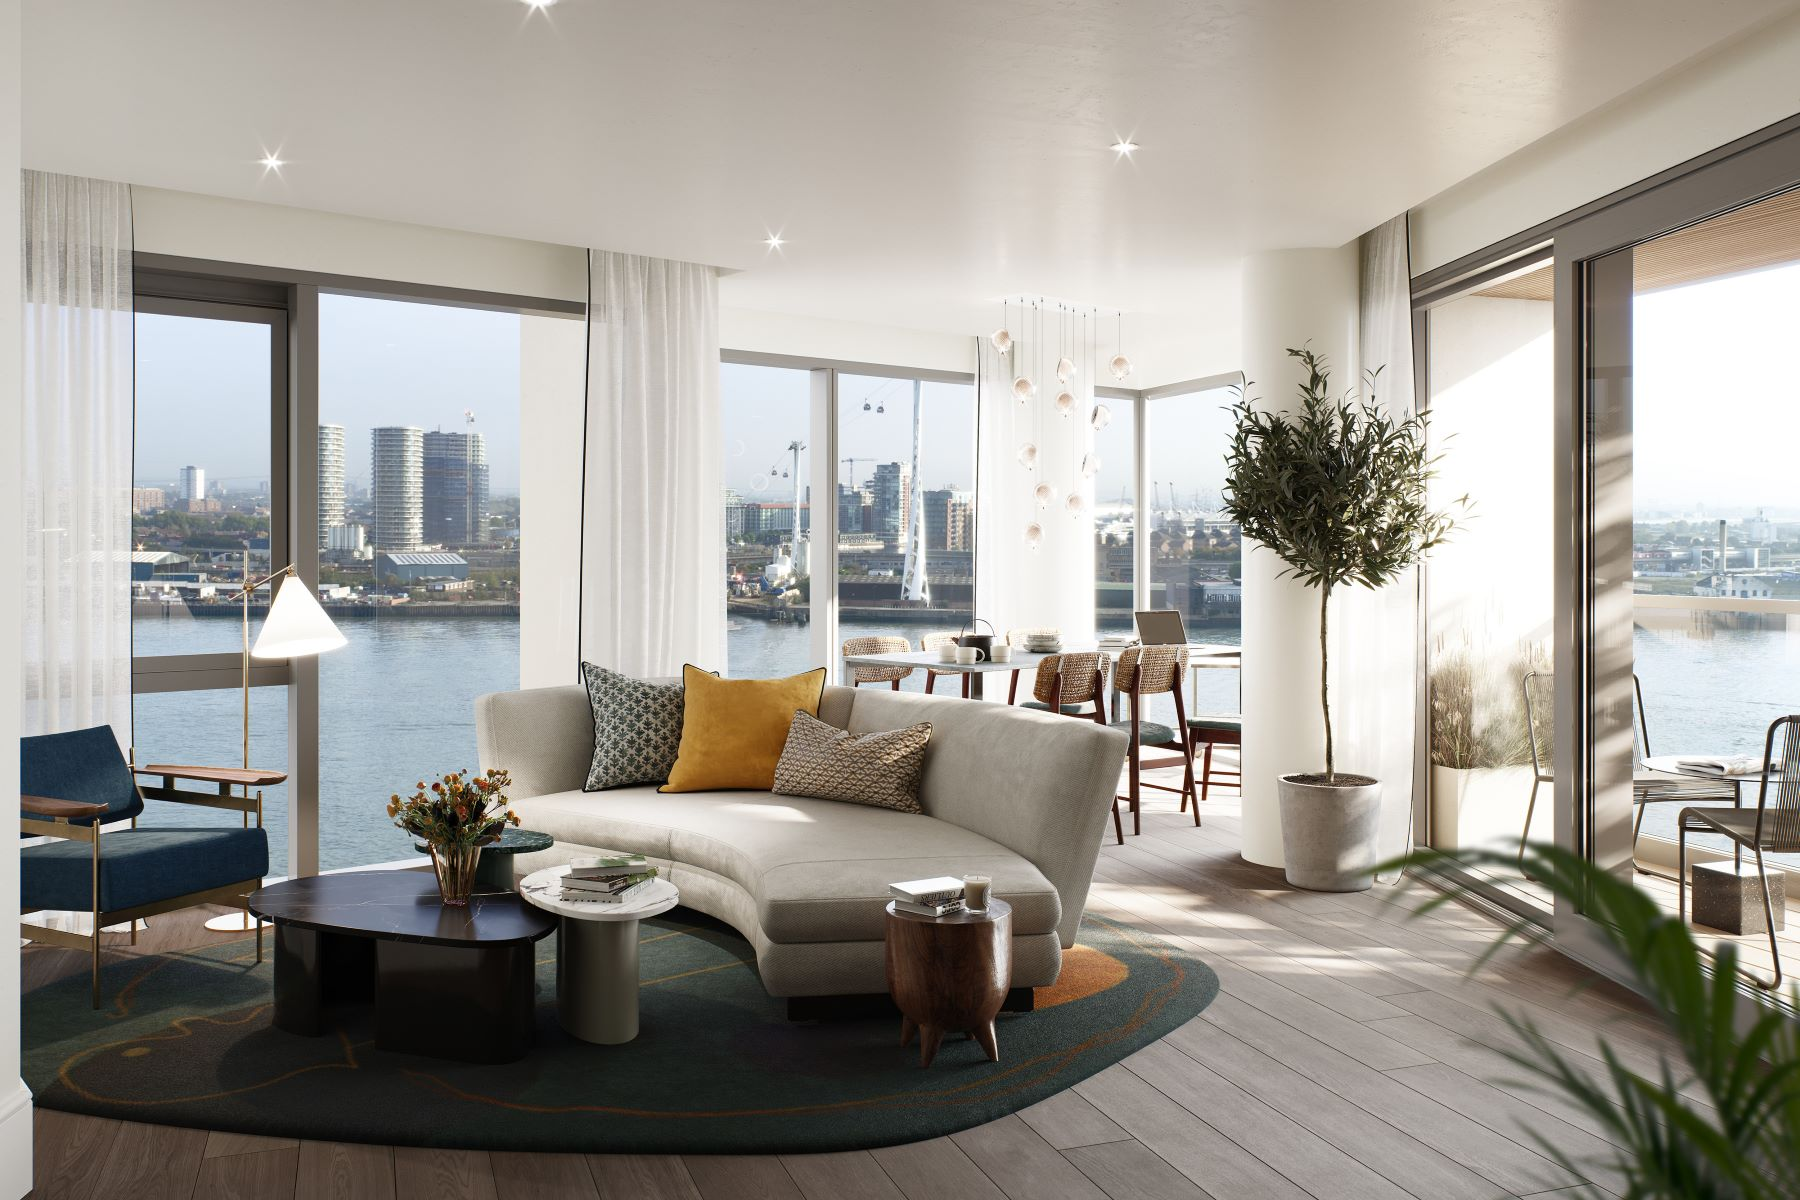 Apartments for Sale at Greenwich Peninsula Building 3 (14.01) Upper Riverside London, England SE10 0SQ United Kingdom